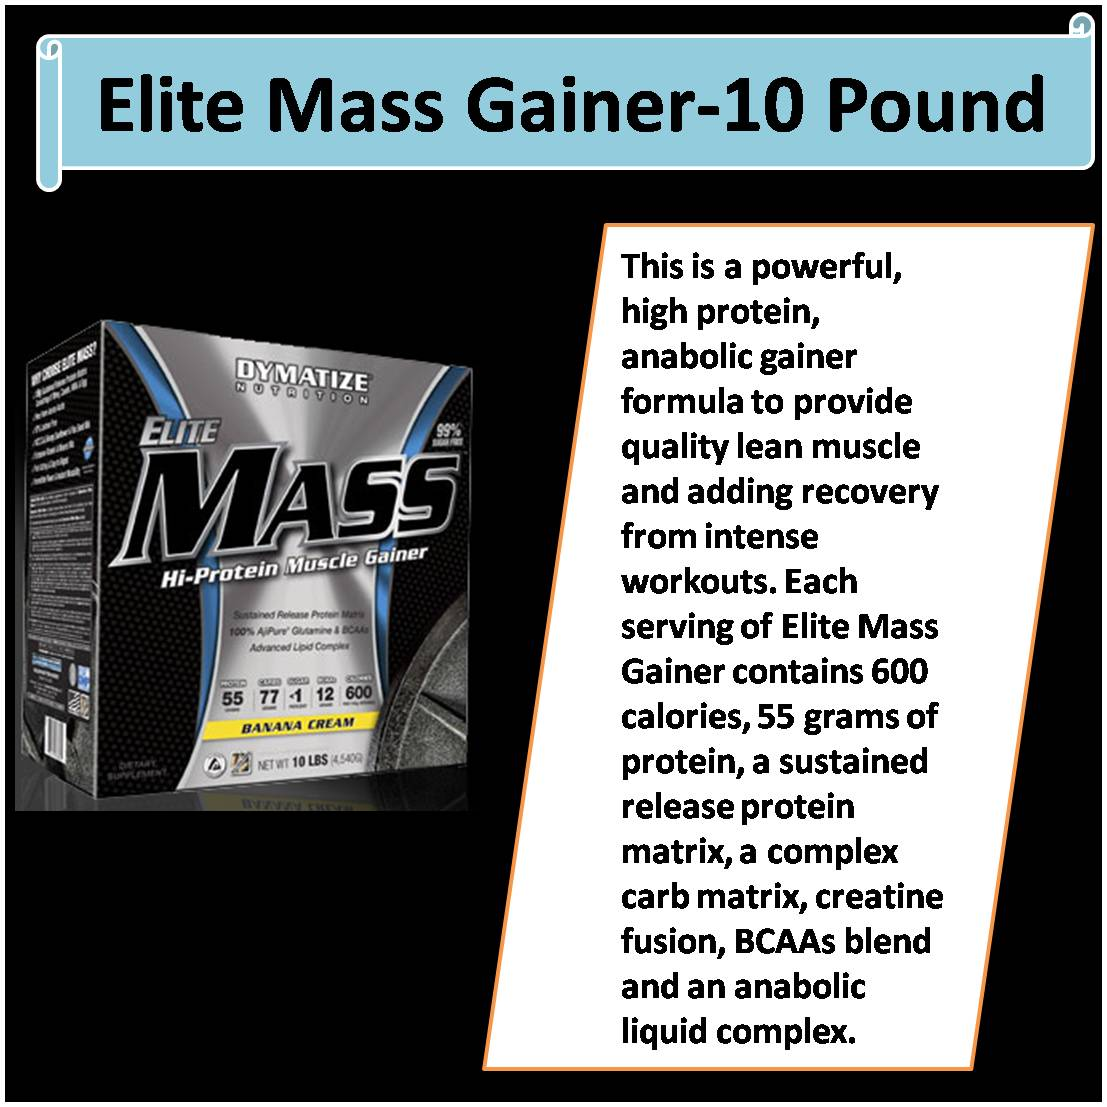 Elite Mass Gainer-10 Pound